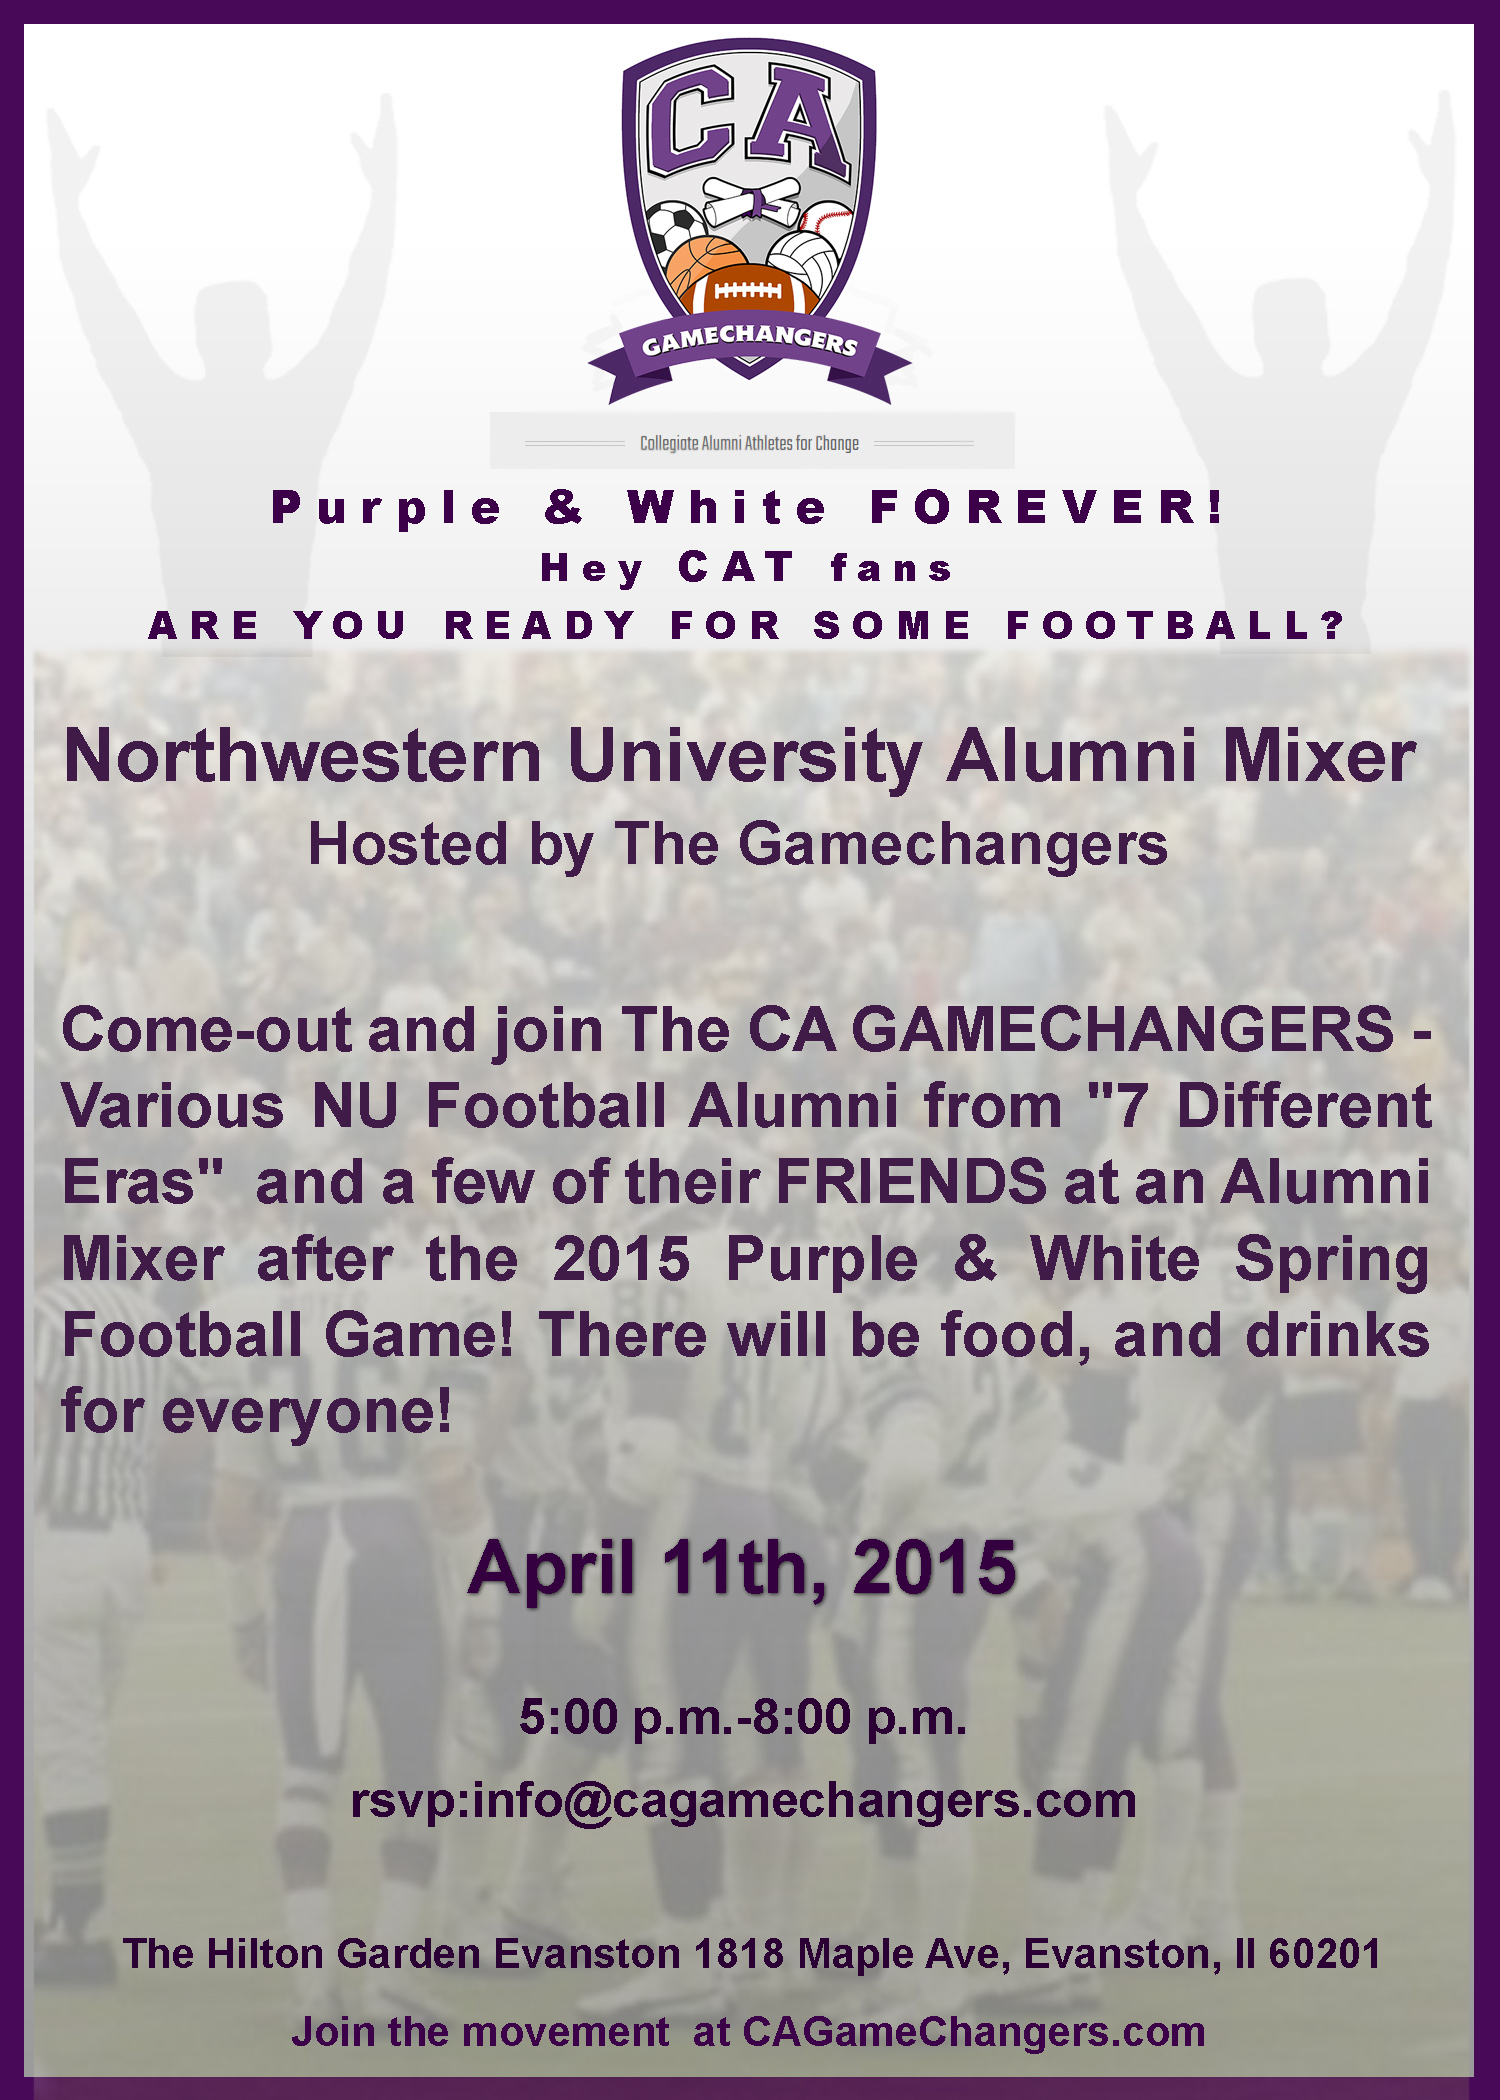 APRIL 11 2015  Spring Game Alumni Mixer HOSTED by The GAMECHANGERS : APRIL 11 2015  Spring Game Alumni Mixer HOSTED by The GAMECHANGERS